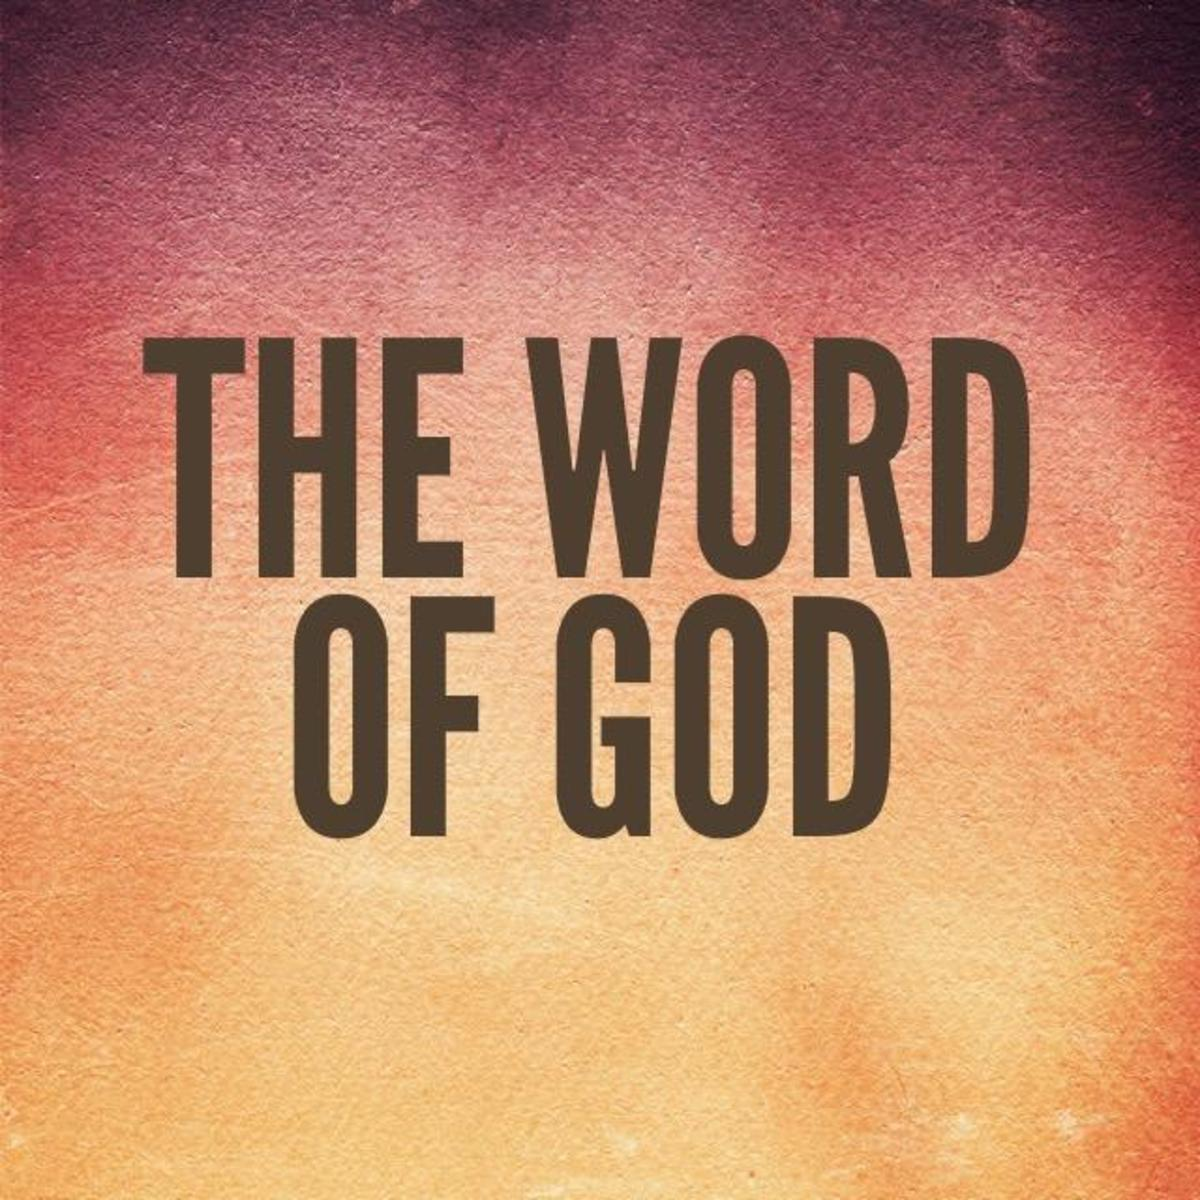 5 Unique Ways to Describe God's Word